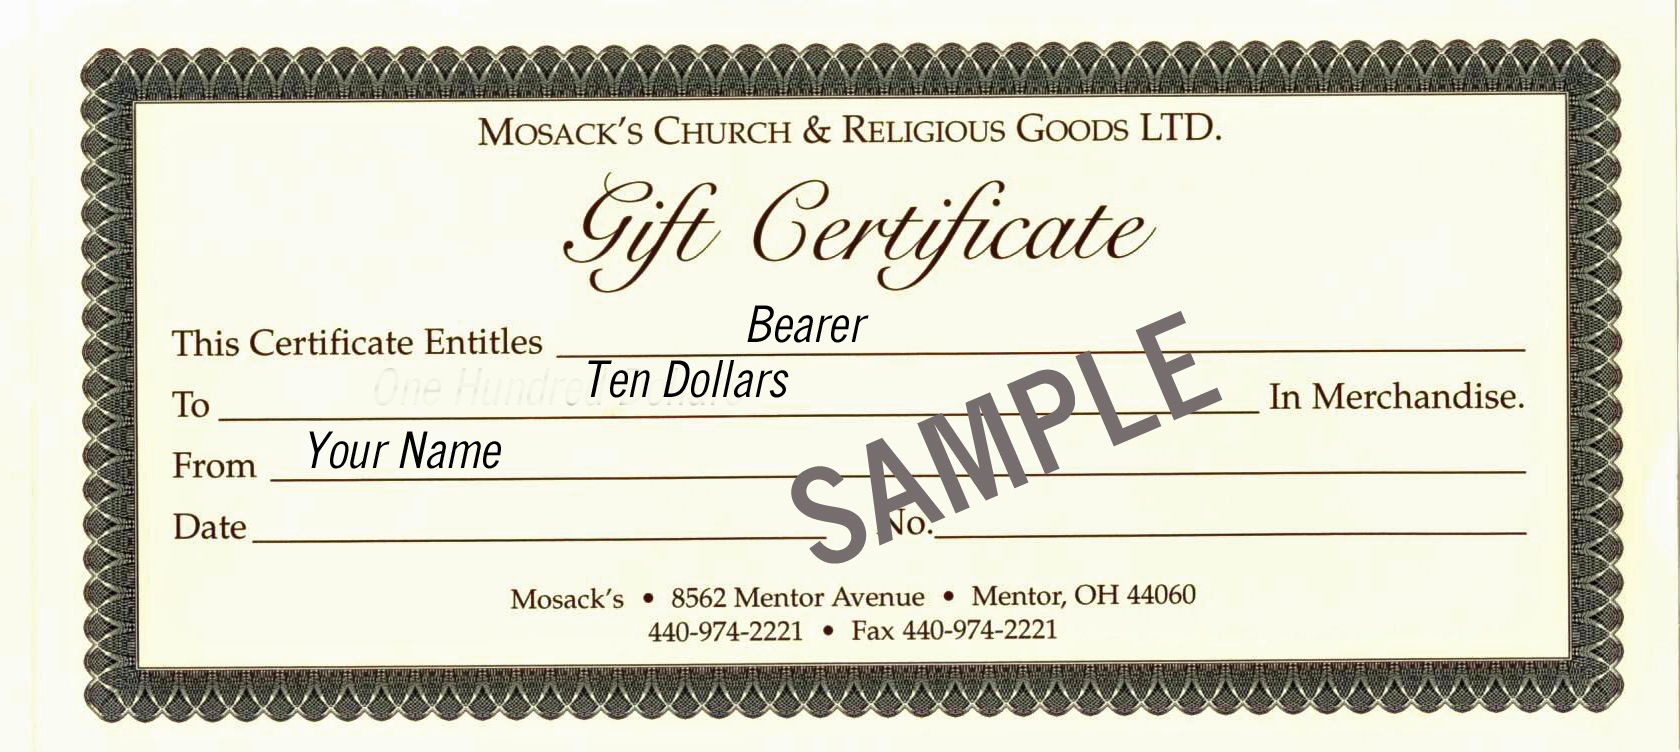 Gift Certificates at MOSACK'S